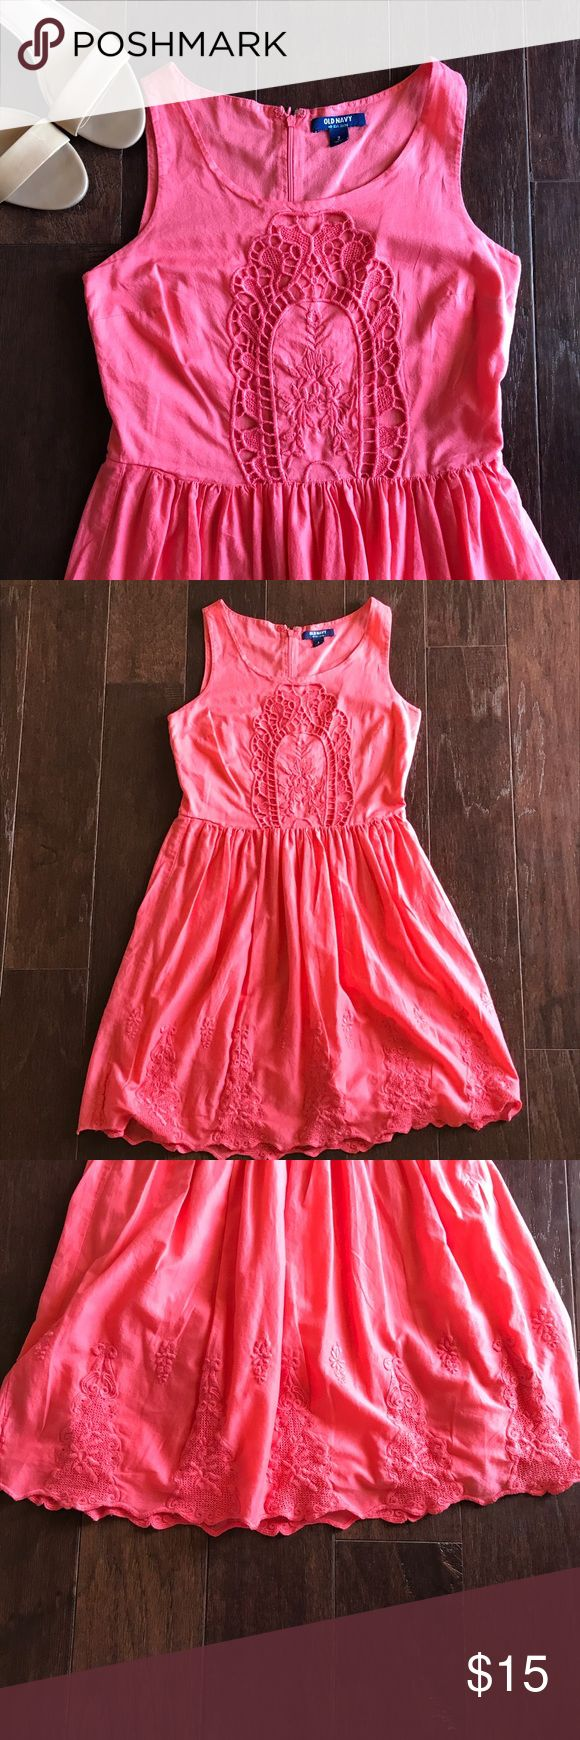 Coral Sundress This beautiful coral sundress is a great addition to any wardrobe! Lightweight and airy, dress features crochet pattern on front of dress and scalloped crochet hemline on bottom. Fully lined with hidden back zipper. Color most accurate in pictures where dress is hanging. From a smoke free and pet free home! Old Navy Dresses